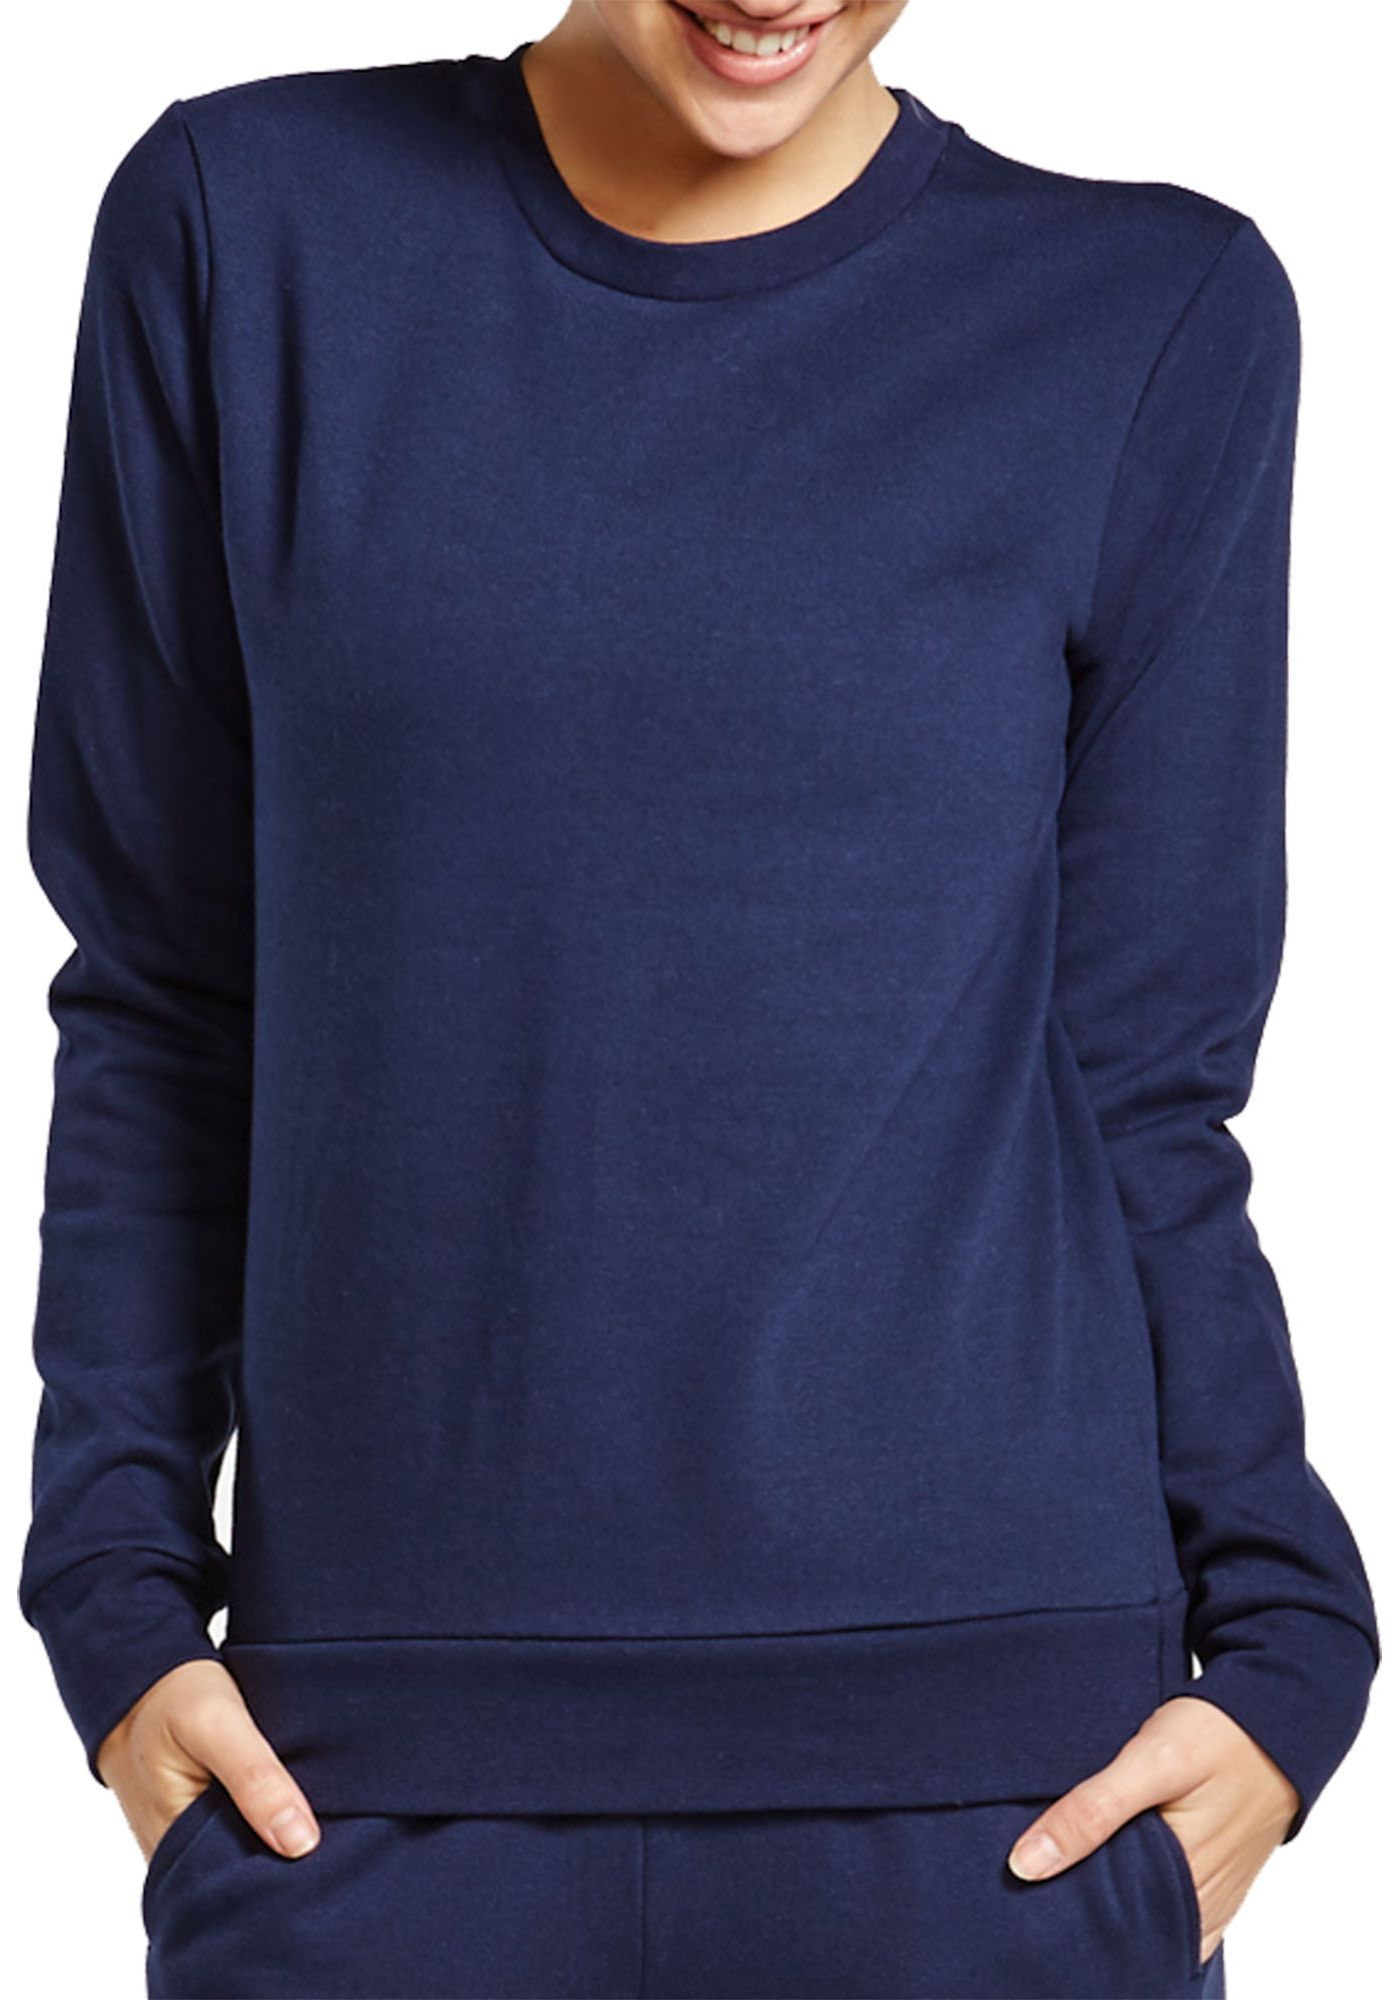 Soffe Juniors' Core Fleece Crew Sweatshirt